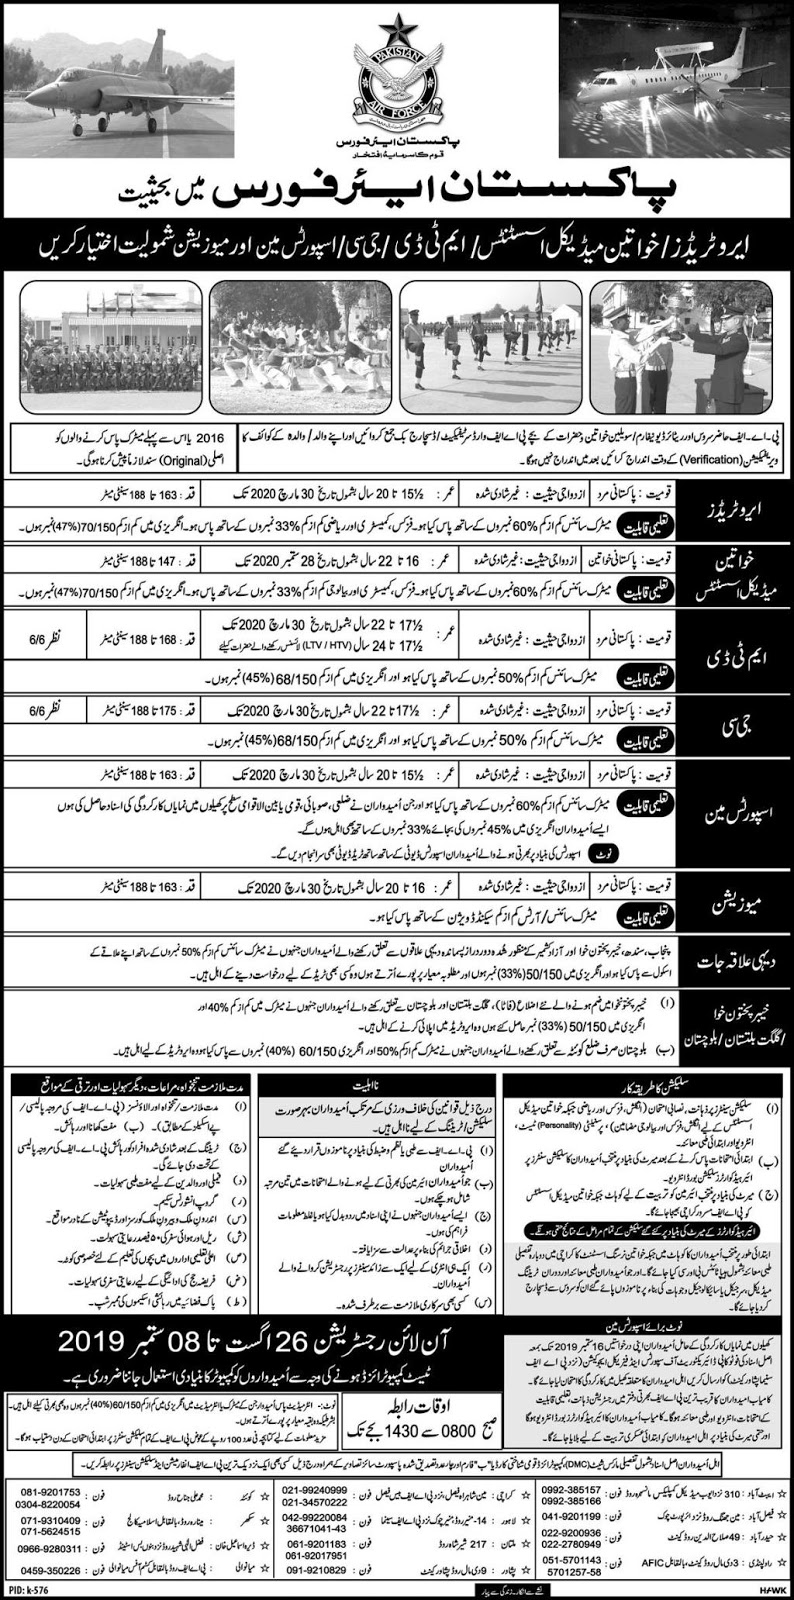 PAF Pakistan Air Force jobs apply online at joinpaf.gov.pk